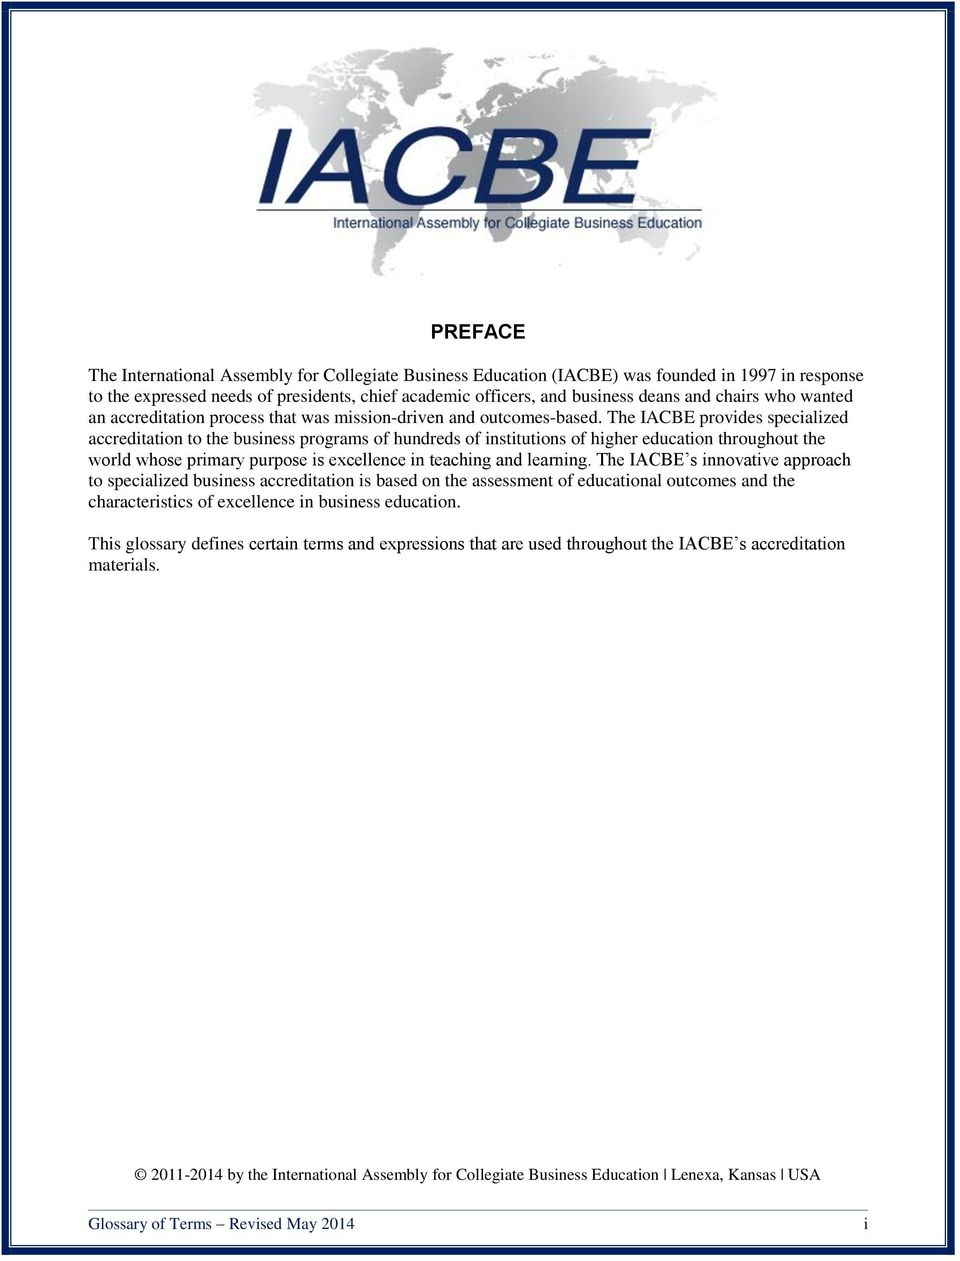 The IACBE provides specialized accreditation to the business programs of hundreds of institutions of higher education throughout the world whose primary purpose is excellence in teaching and learning.